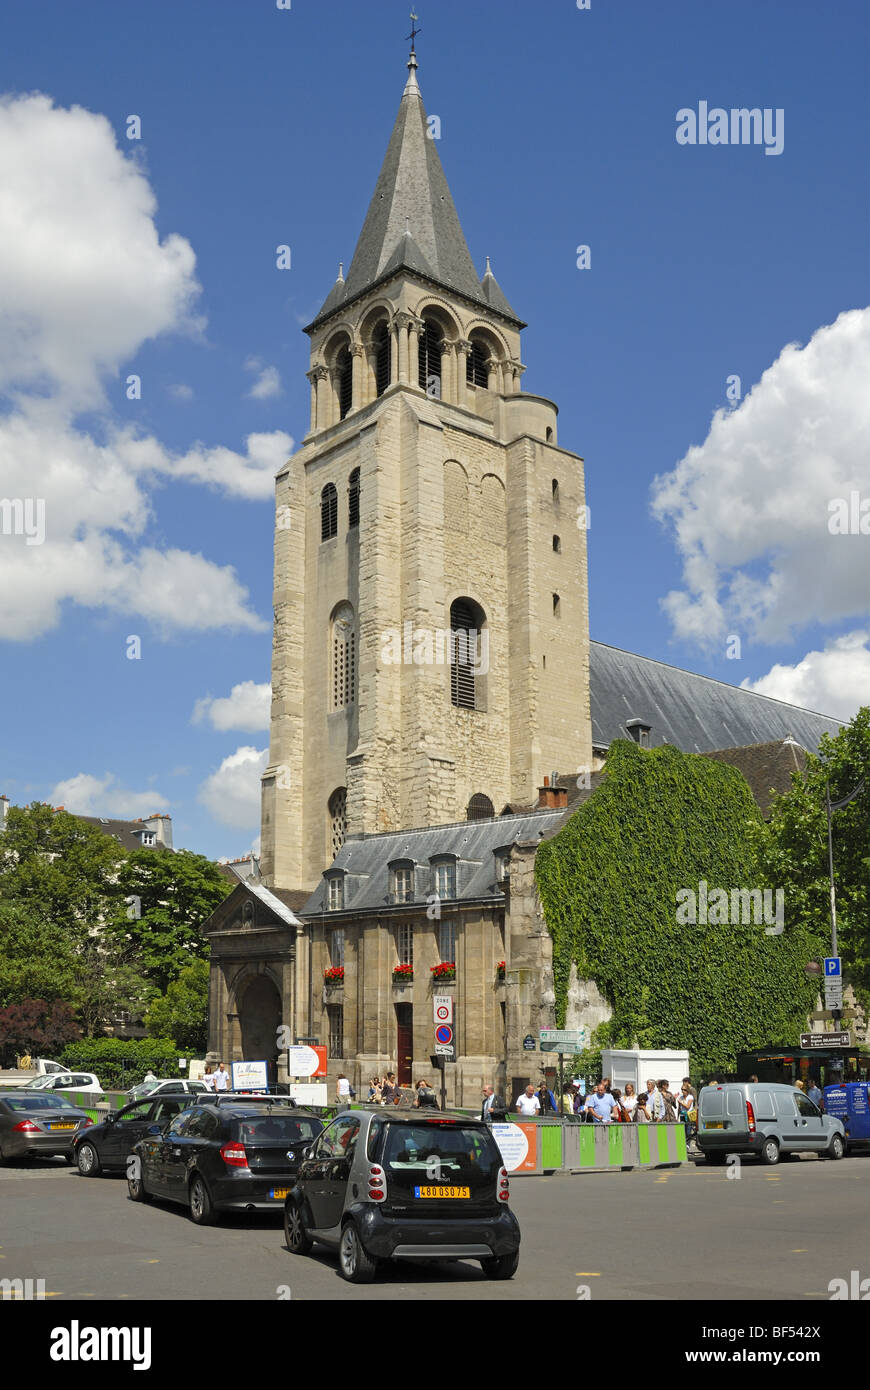 Church of St-Germain-des-Pres, Paris, France - Stock Image